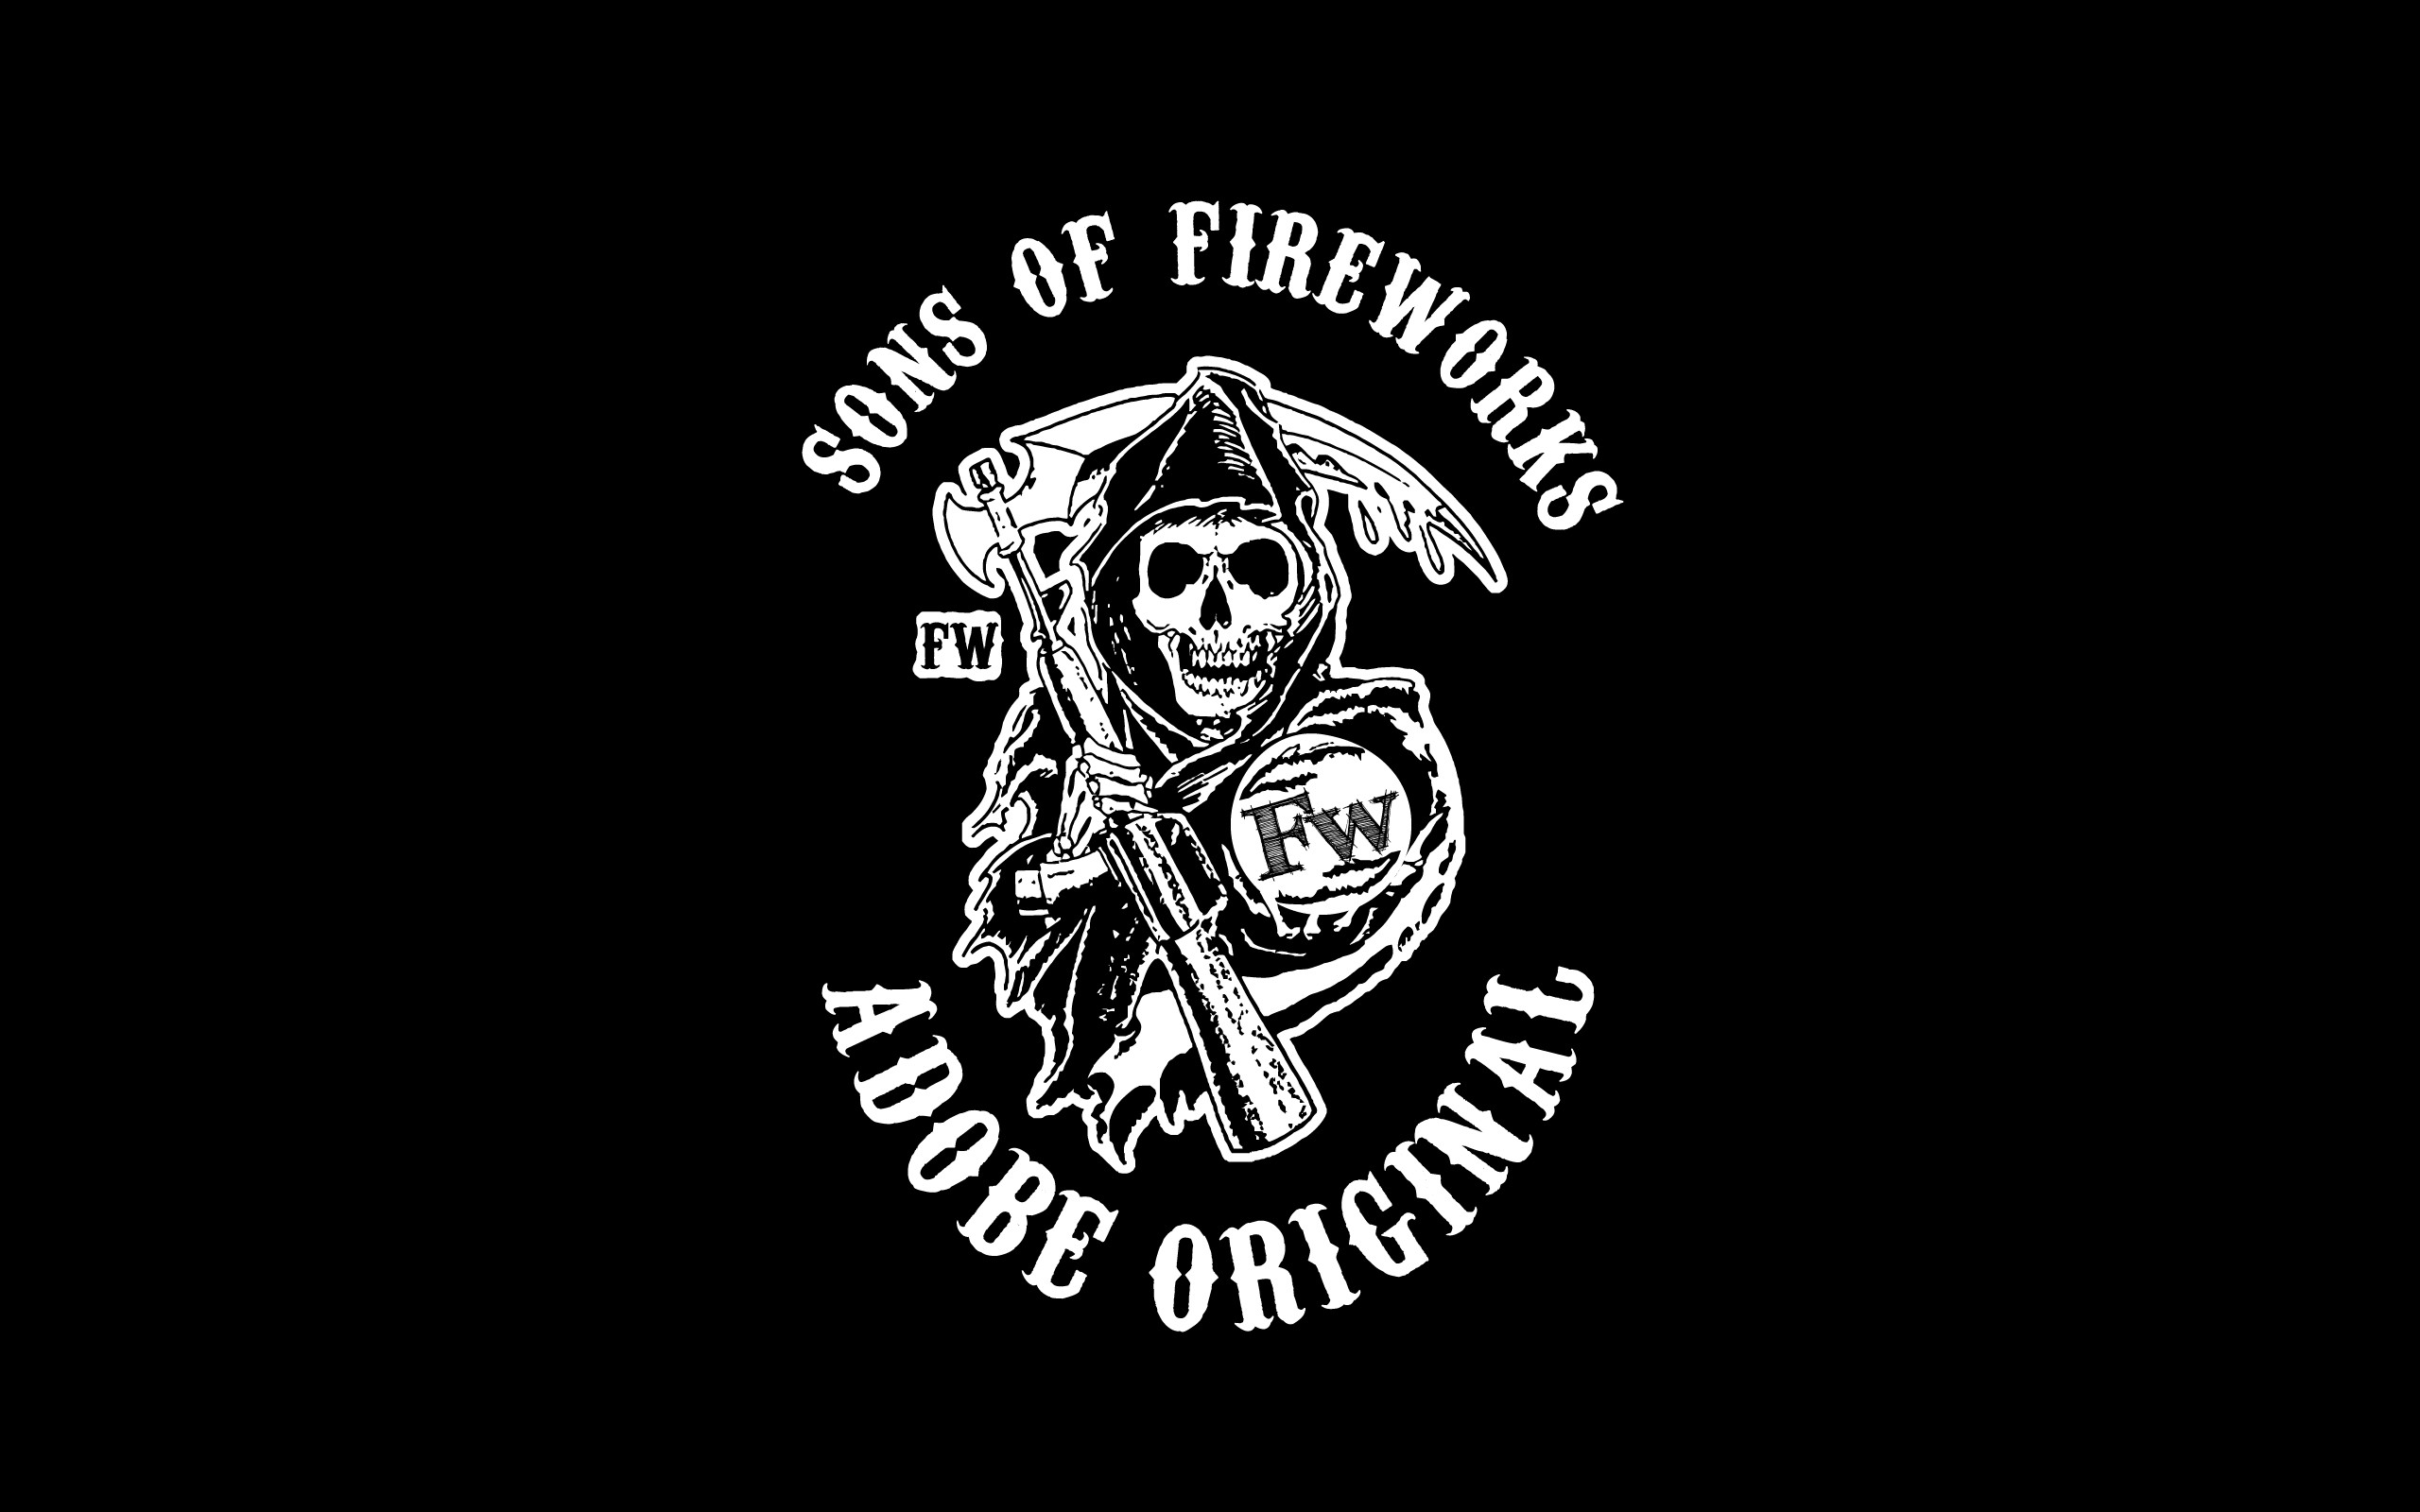 Sons Of Anarchy Wallpaper 1440X900, HDQ Beautiful Sons Of ..